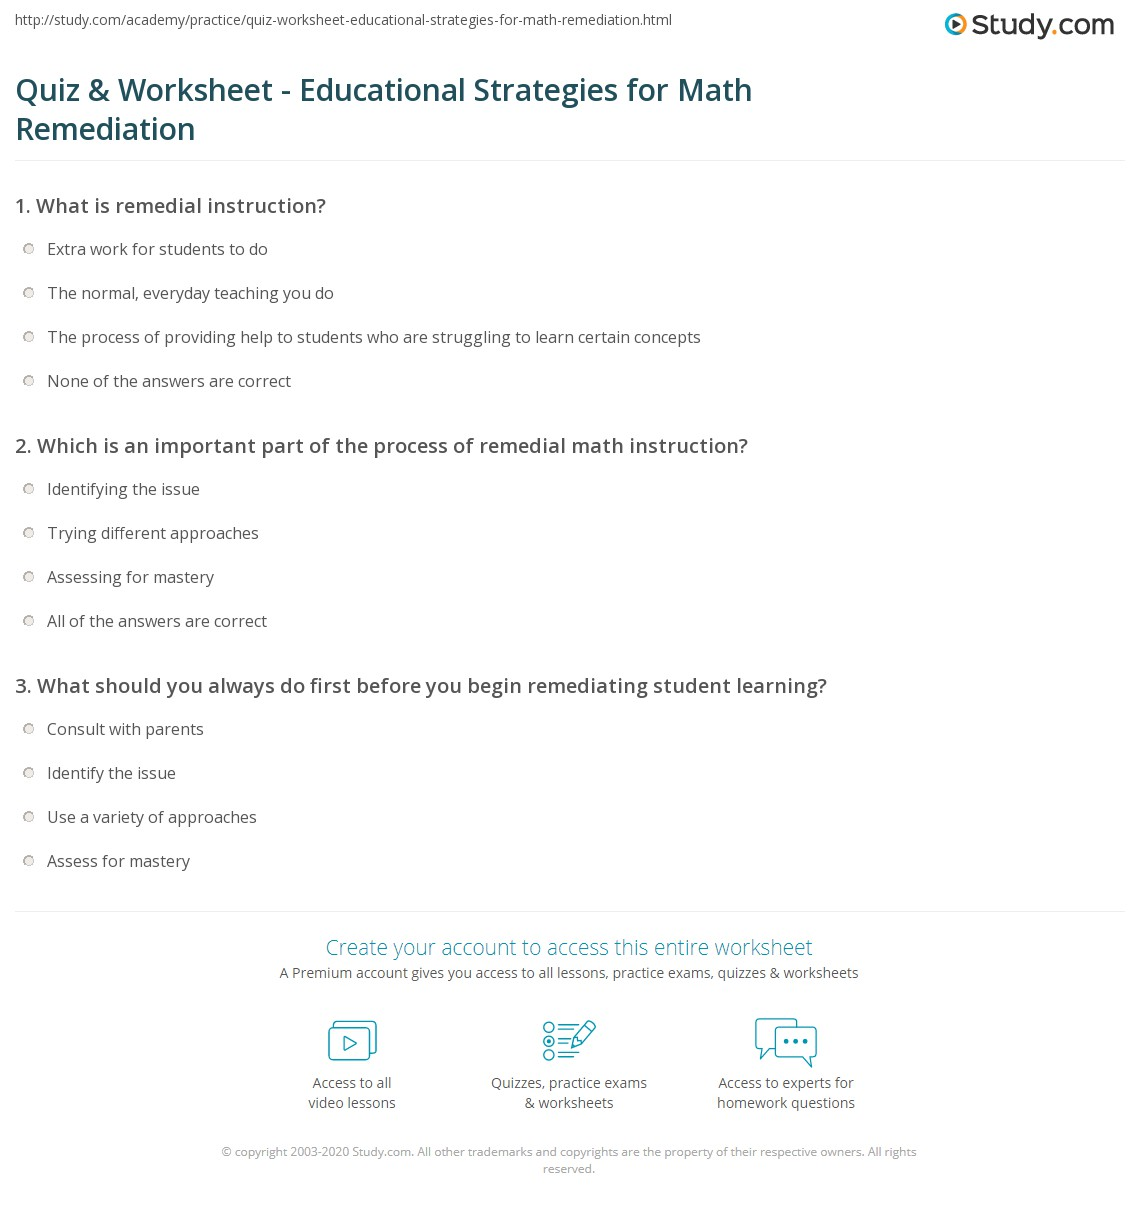 Worksheets Remedial Math Worksheets quiz worksheet educational strategies for math remediation print teaching methods remedial worksheet